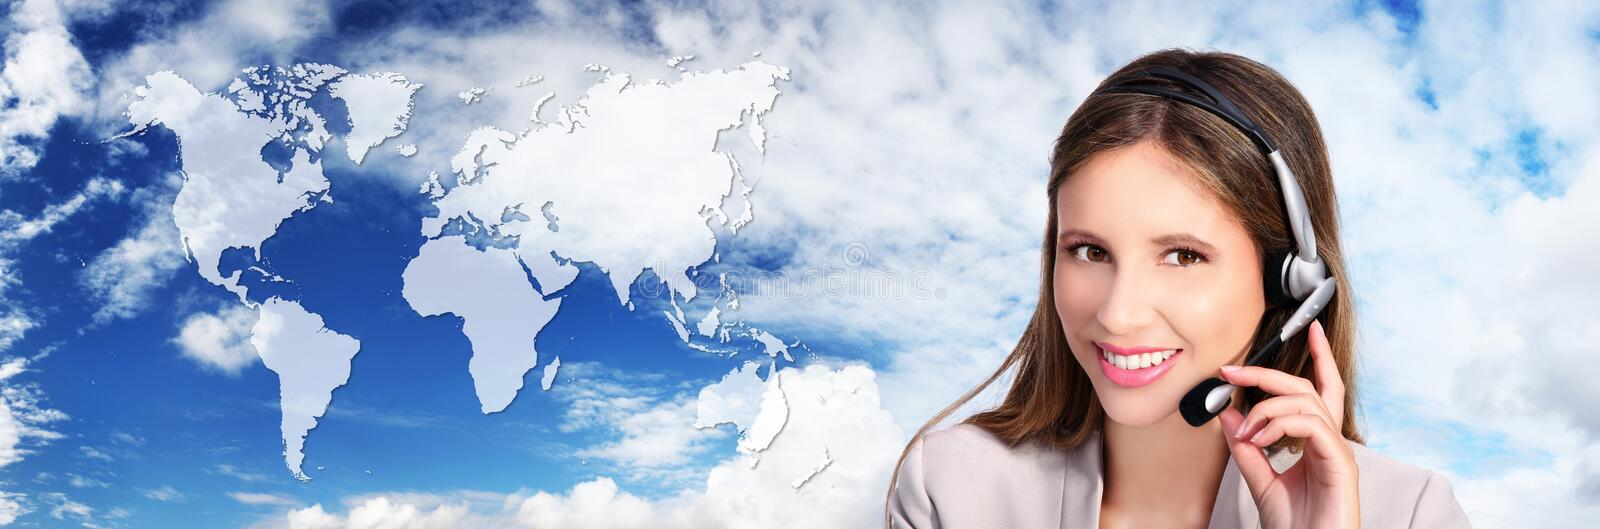 Download Call Center Operator With Map, International Contact Conc Stock Photo - Image: 58993130